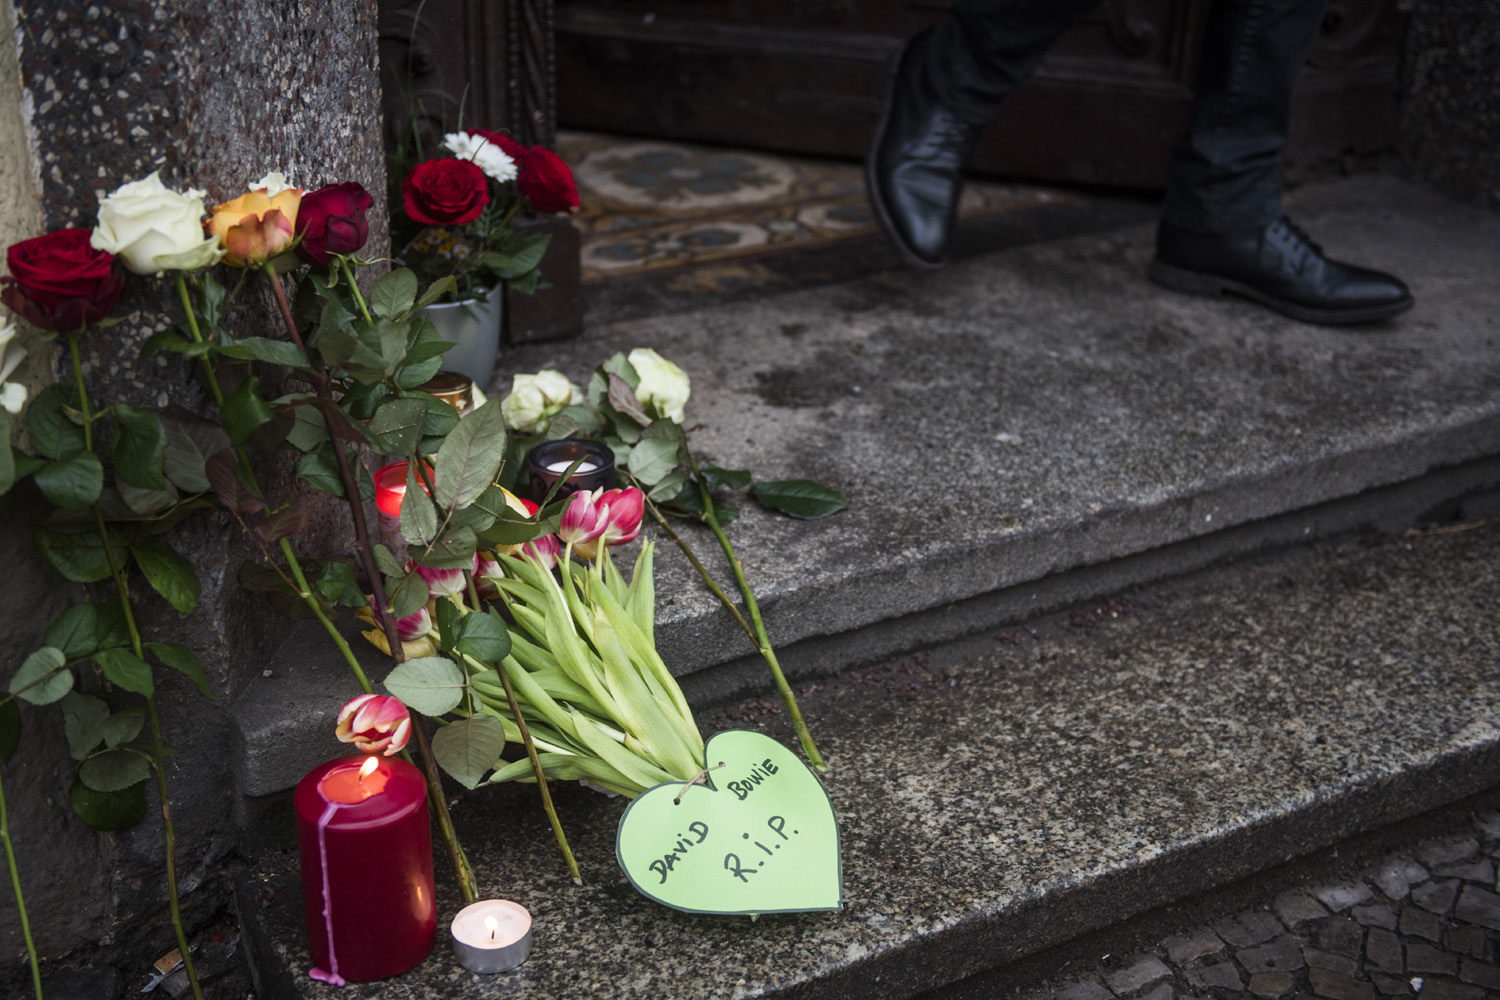 A resident leaves the building among tributes to British rock legend David Bowie leftoutside his former home in Berlin's Hauptstrasse 155 on January 11, 2016. British rock music legend David Bowie has died after a long battle with cancer, his official Twitter and Facebook accounts said. / AFP / ODD ANDERSEN